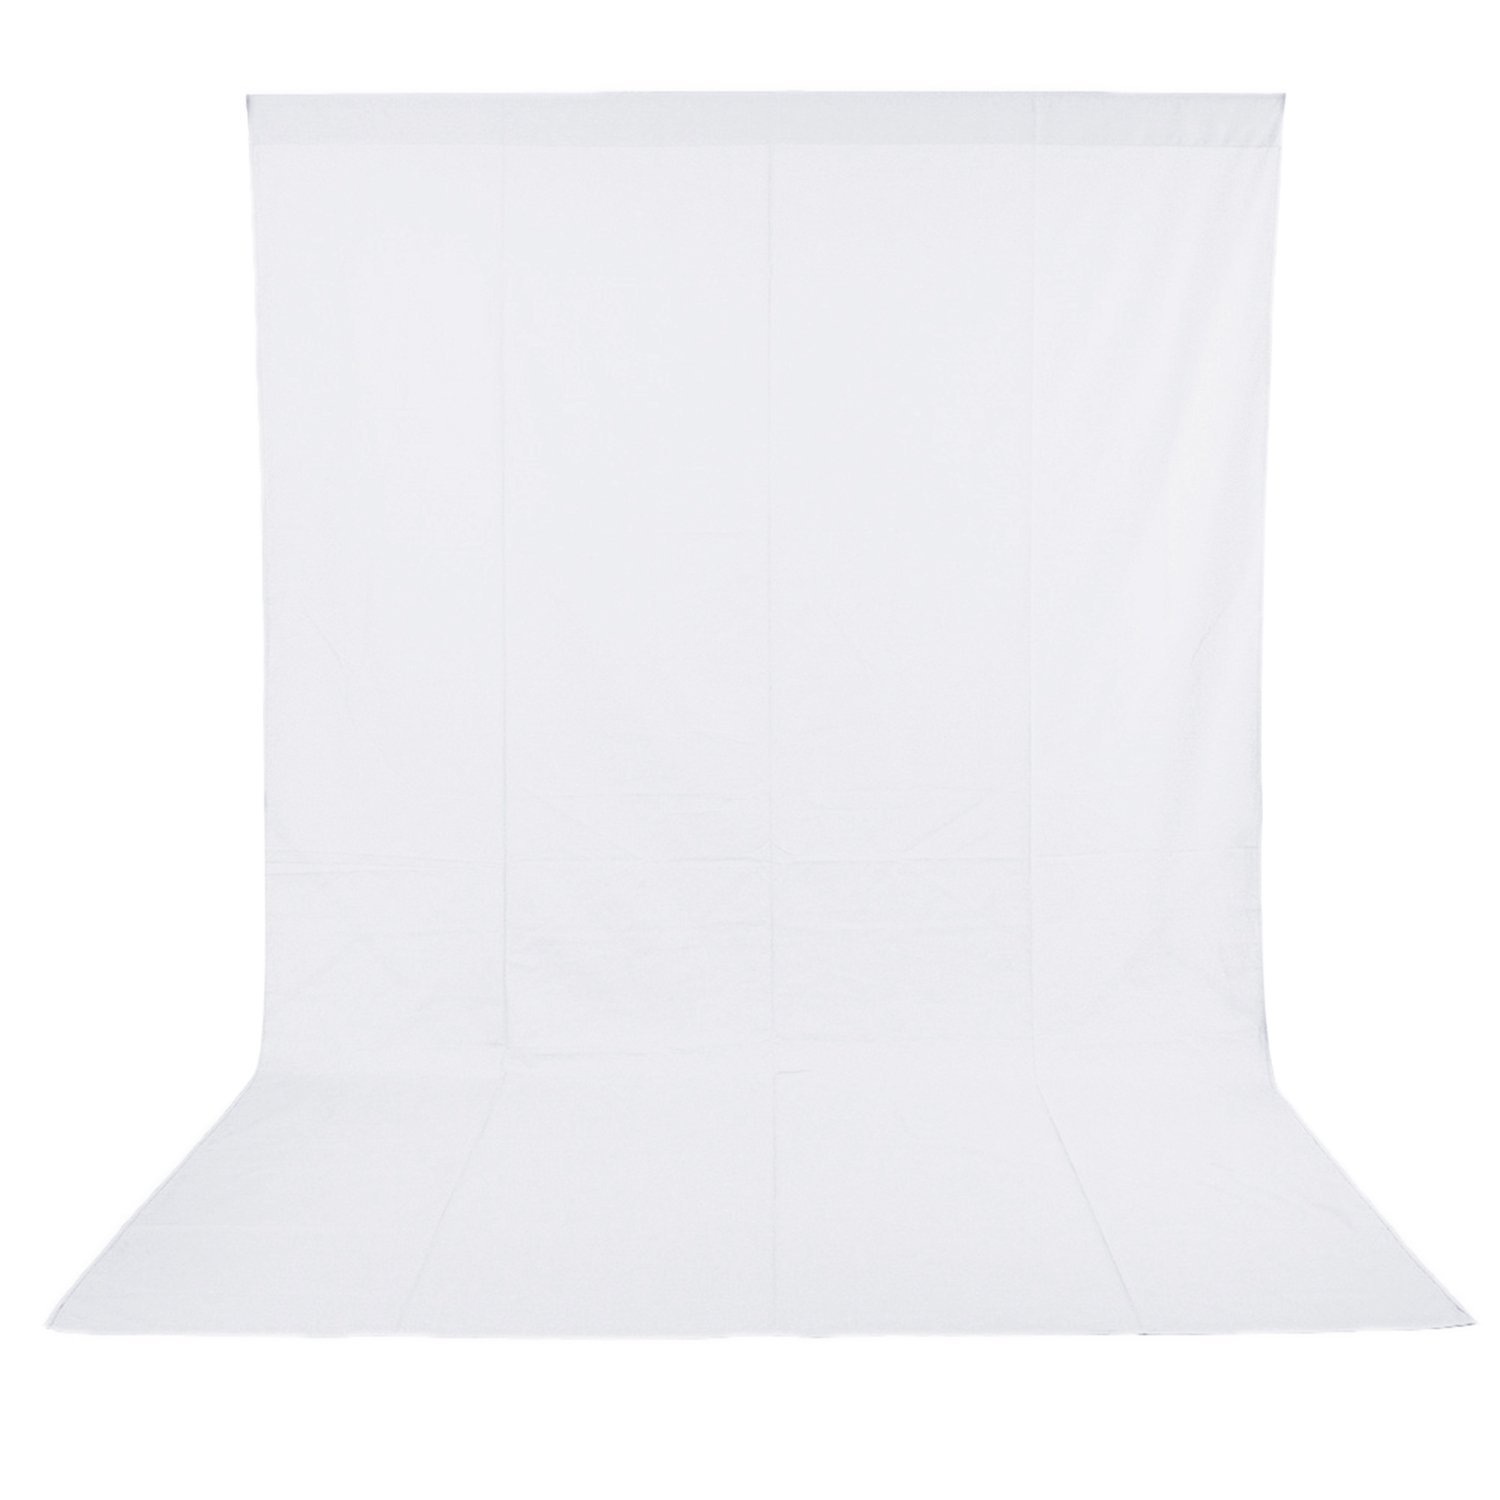 Neewer 10 x 20FT / 3 x 6M PRO Photo Studio 100% Pure Muslin Collapsible Backdrop Background for Photography,Video and Televison (Background ONLY) - WHITE by Neewer (Image #1)